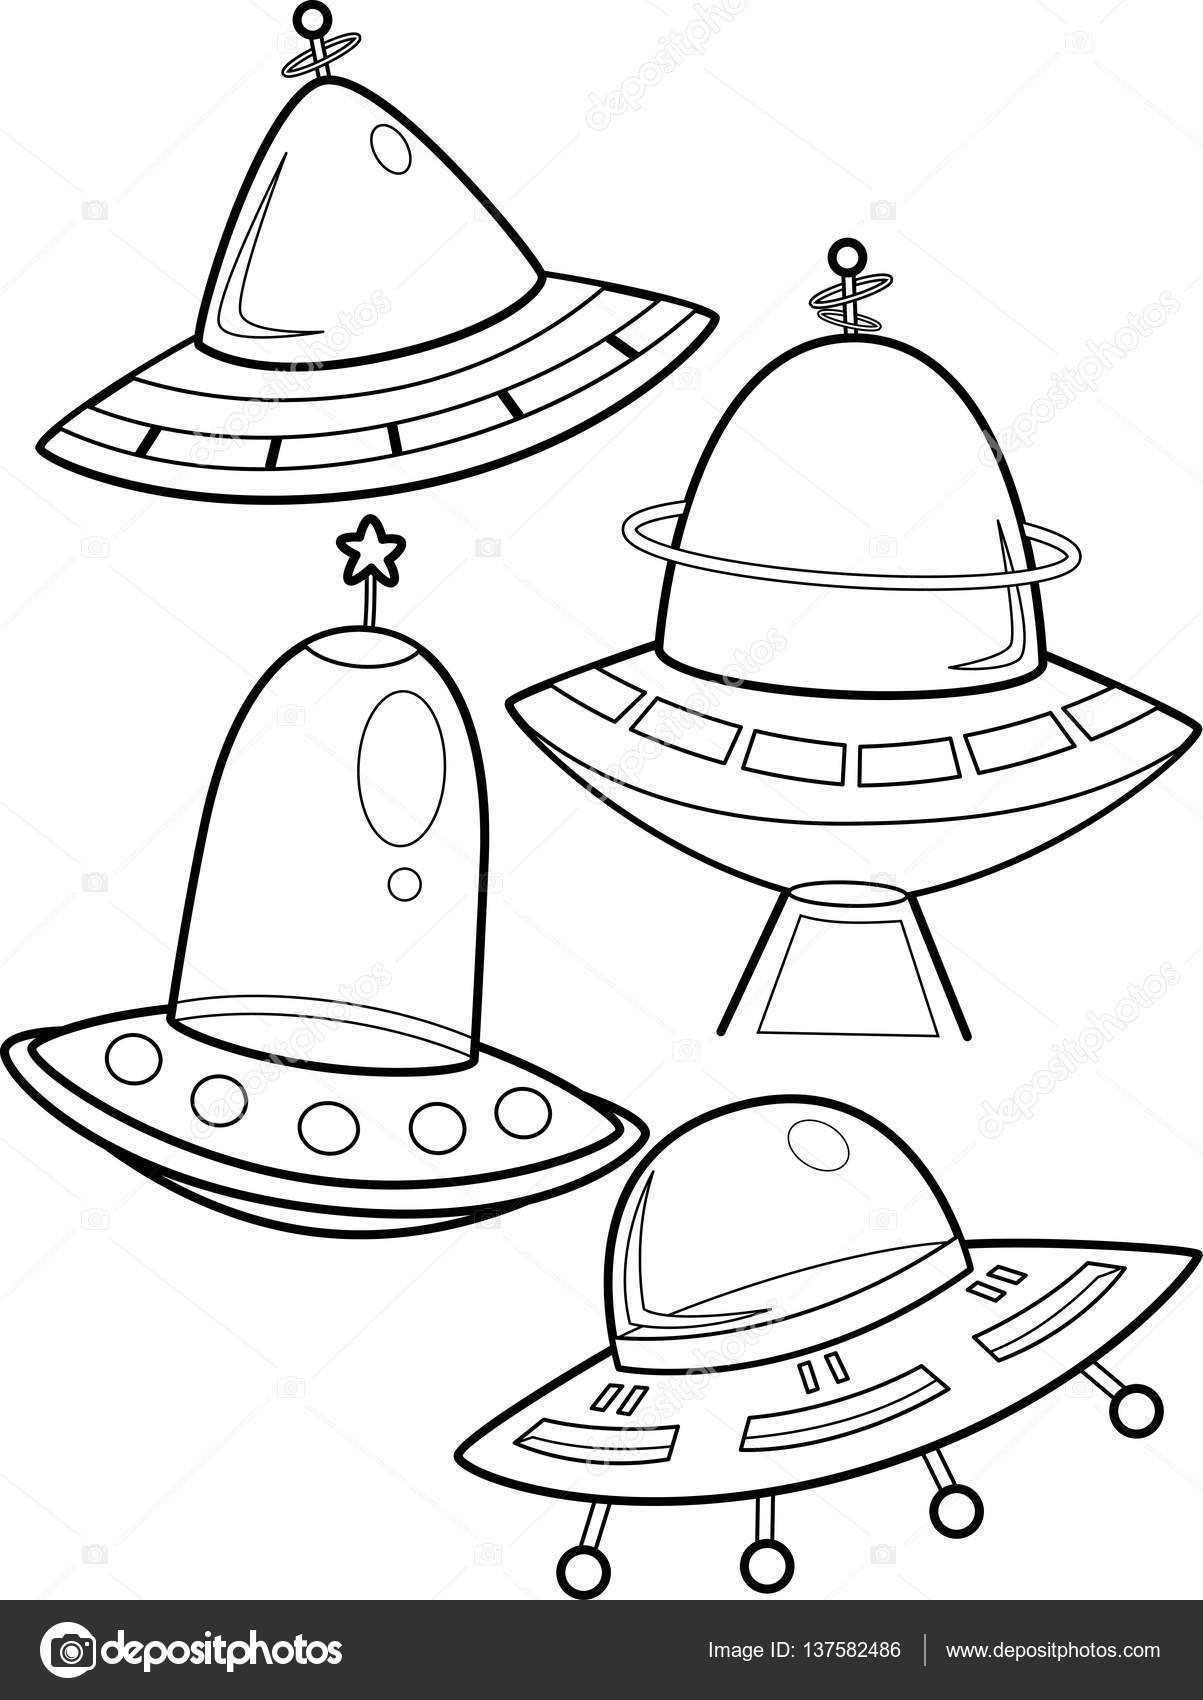 Spaceship Coloring Page — Stock Photo © lenmdp #137582486